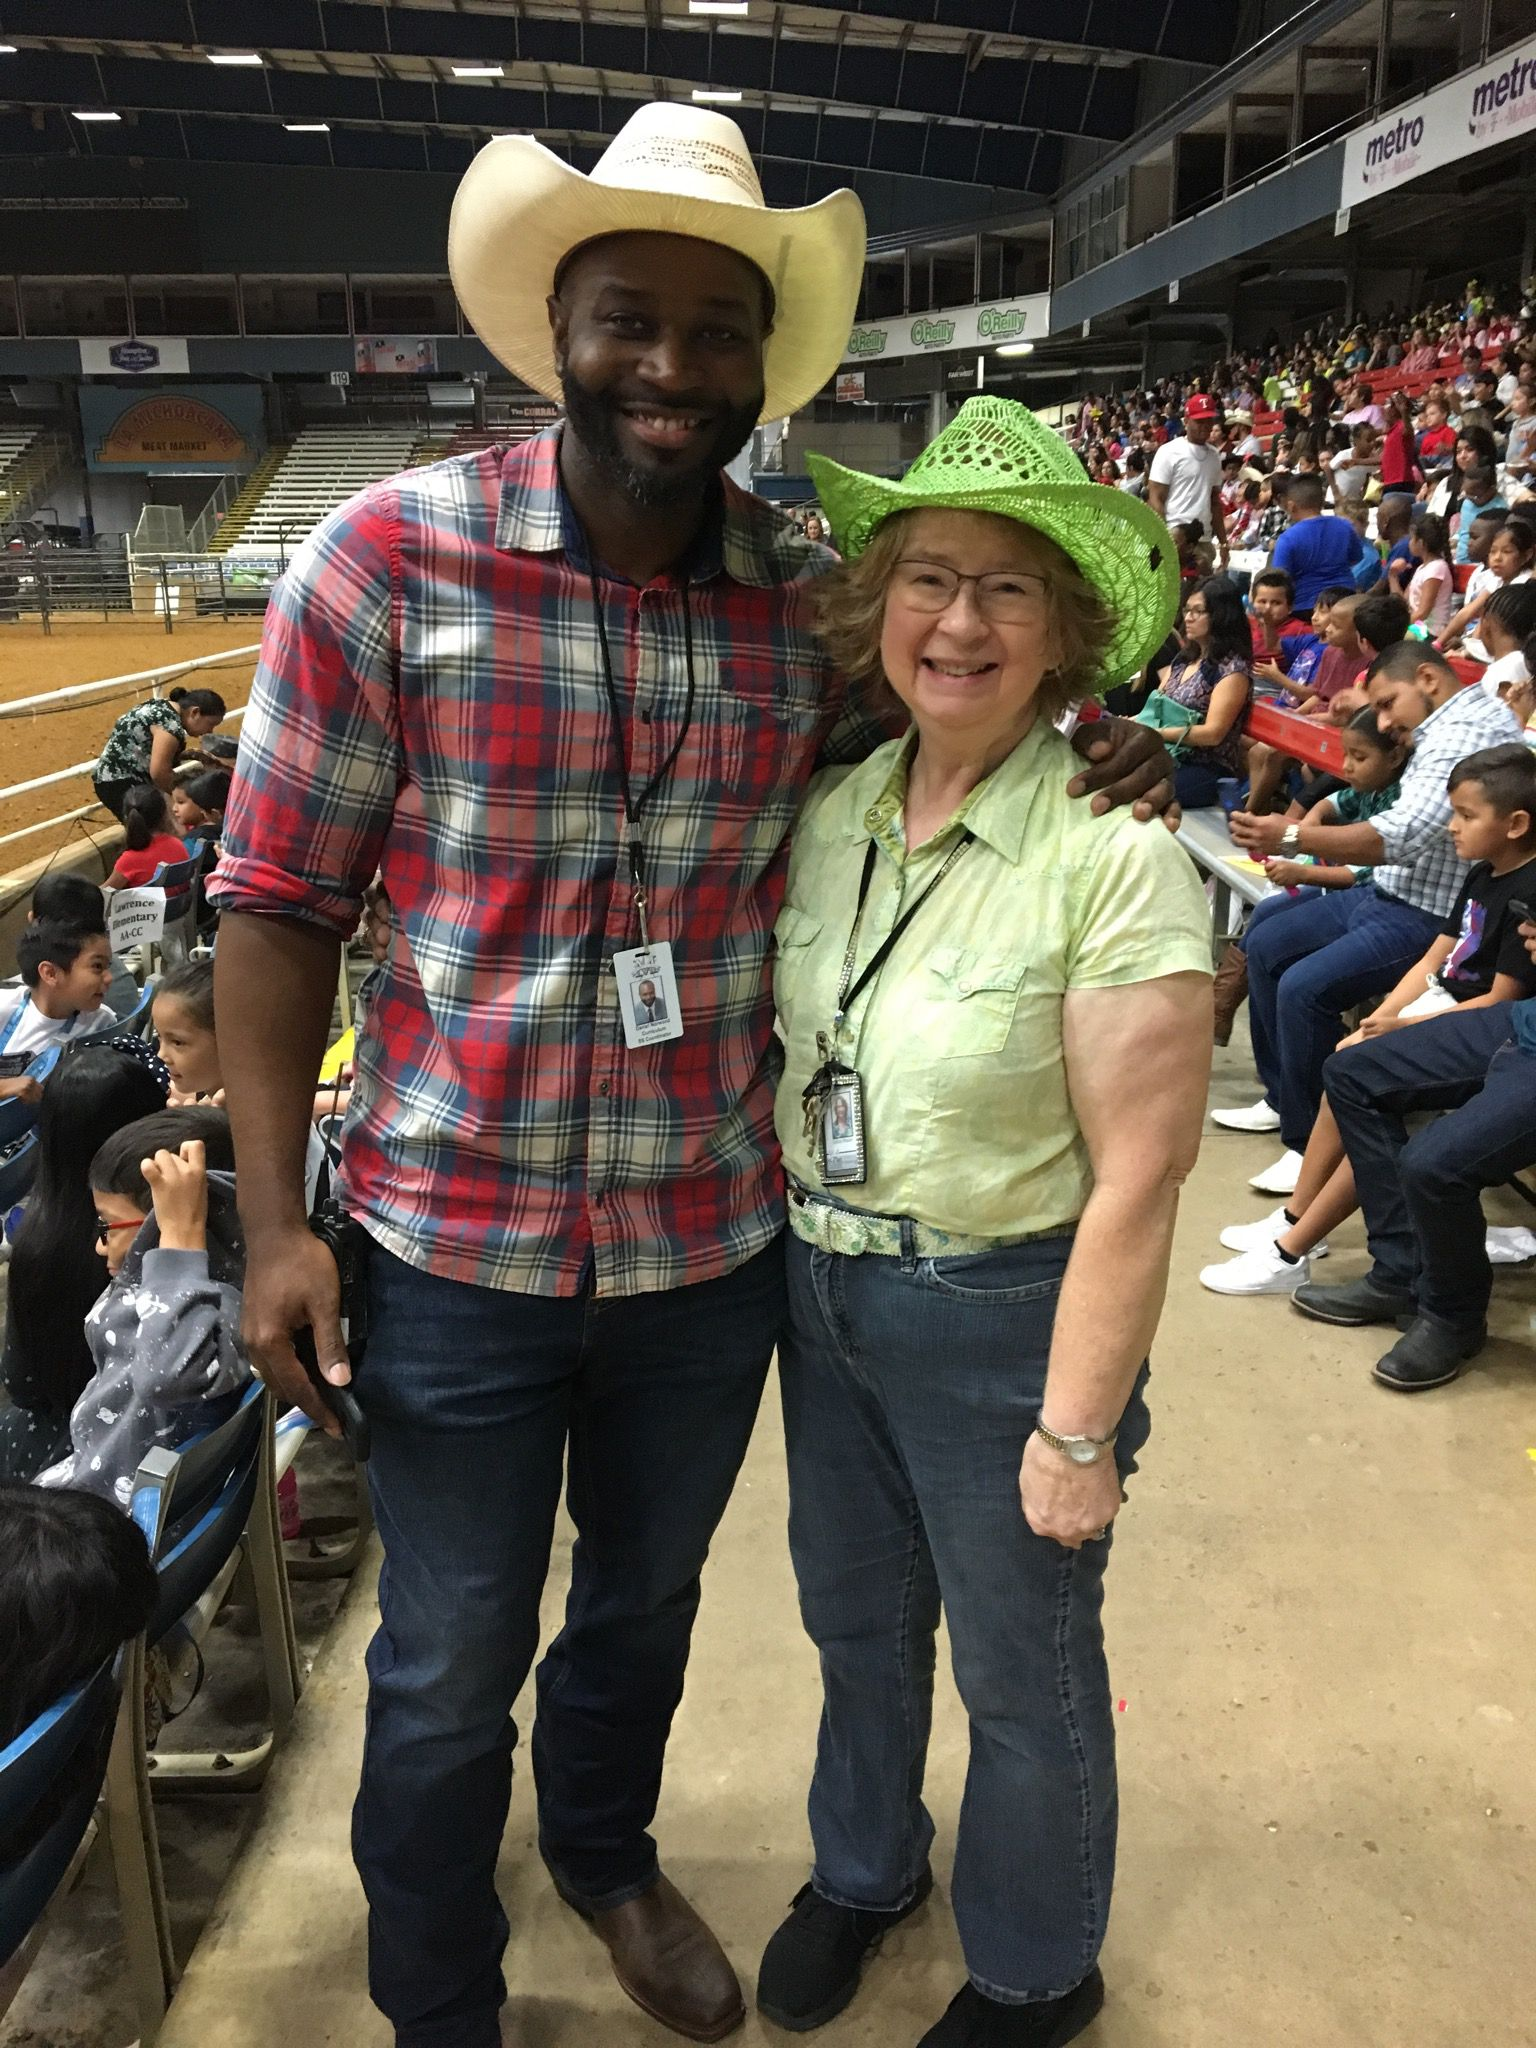 Daniel Norwood, the K-12 social studies coordinator for Mesquite ISD, and Louise Weaver, a Mesquite ISD teacher, smile at one of the district's Rodeo Day events. Weaver, who is retiring this year after a 50-year career as an educator, knew Norwood when he was in kindergarten and has seen him and dozens of other students go on to fill important jobs.